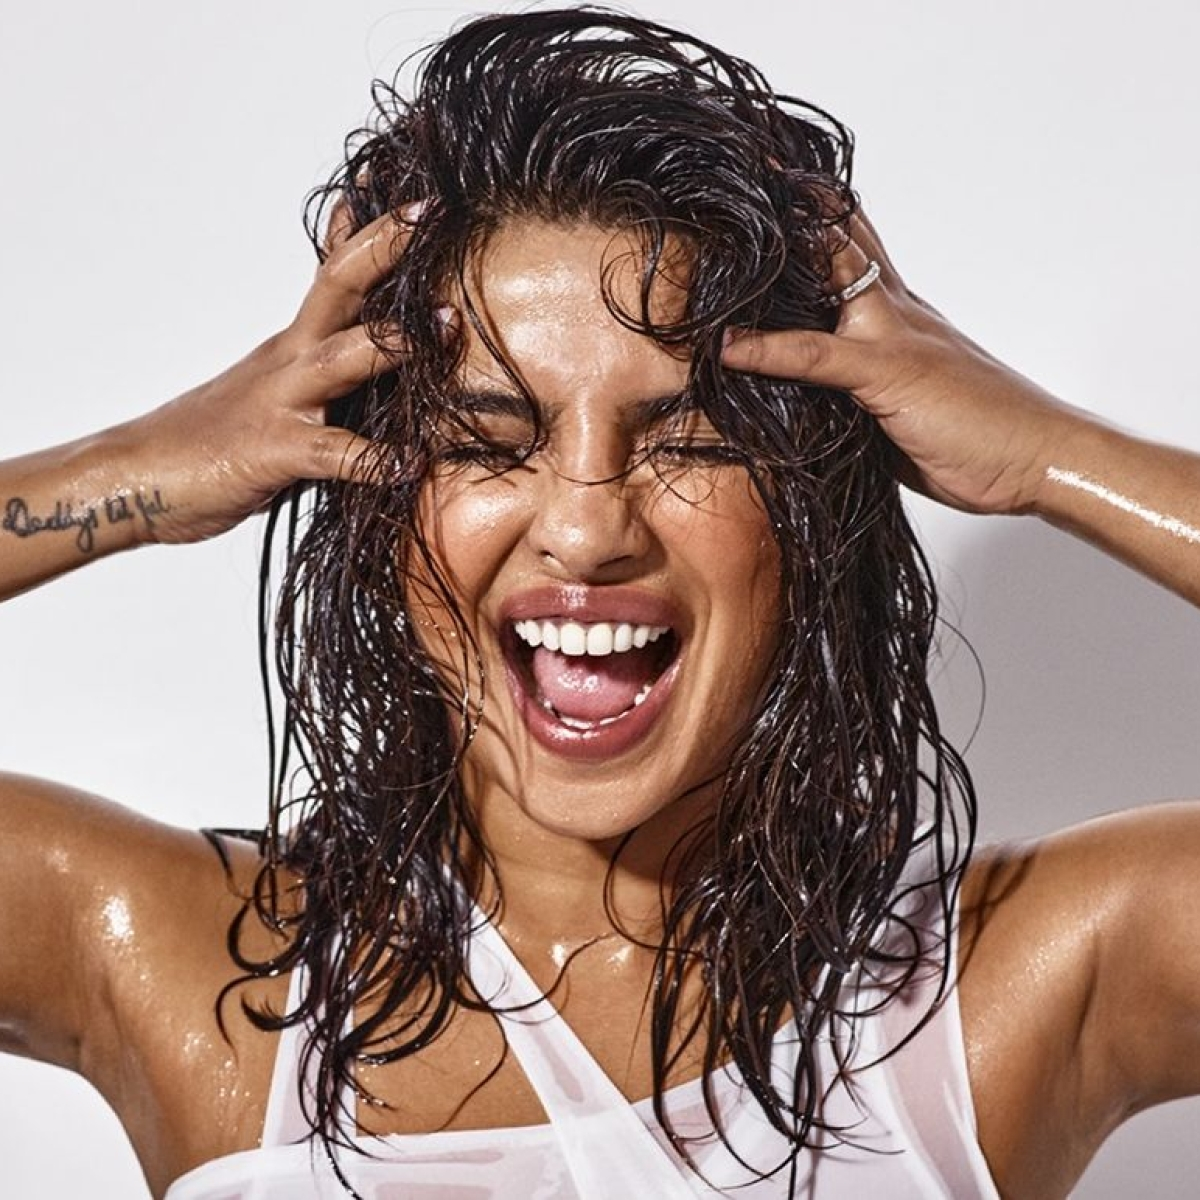 Priyanka Chopra launches affordable haircare range 'Anomaly': Cost, where to buy – All you need to know